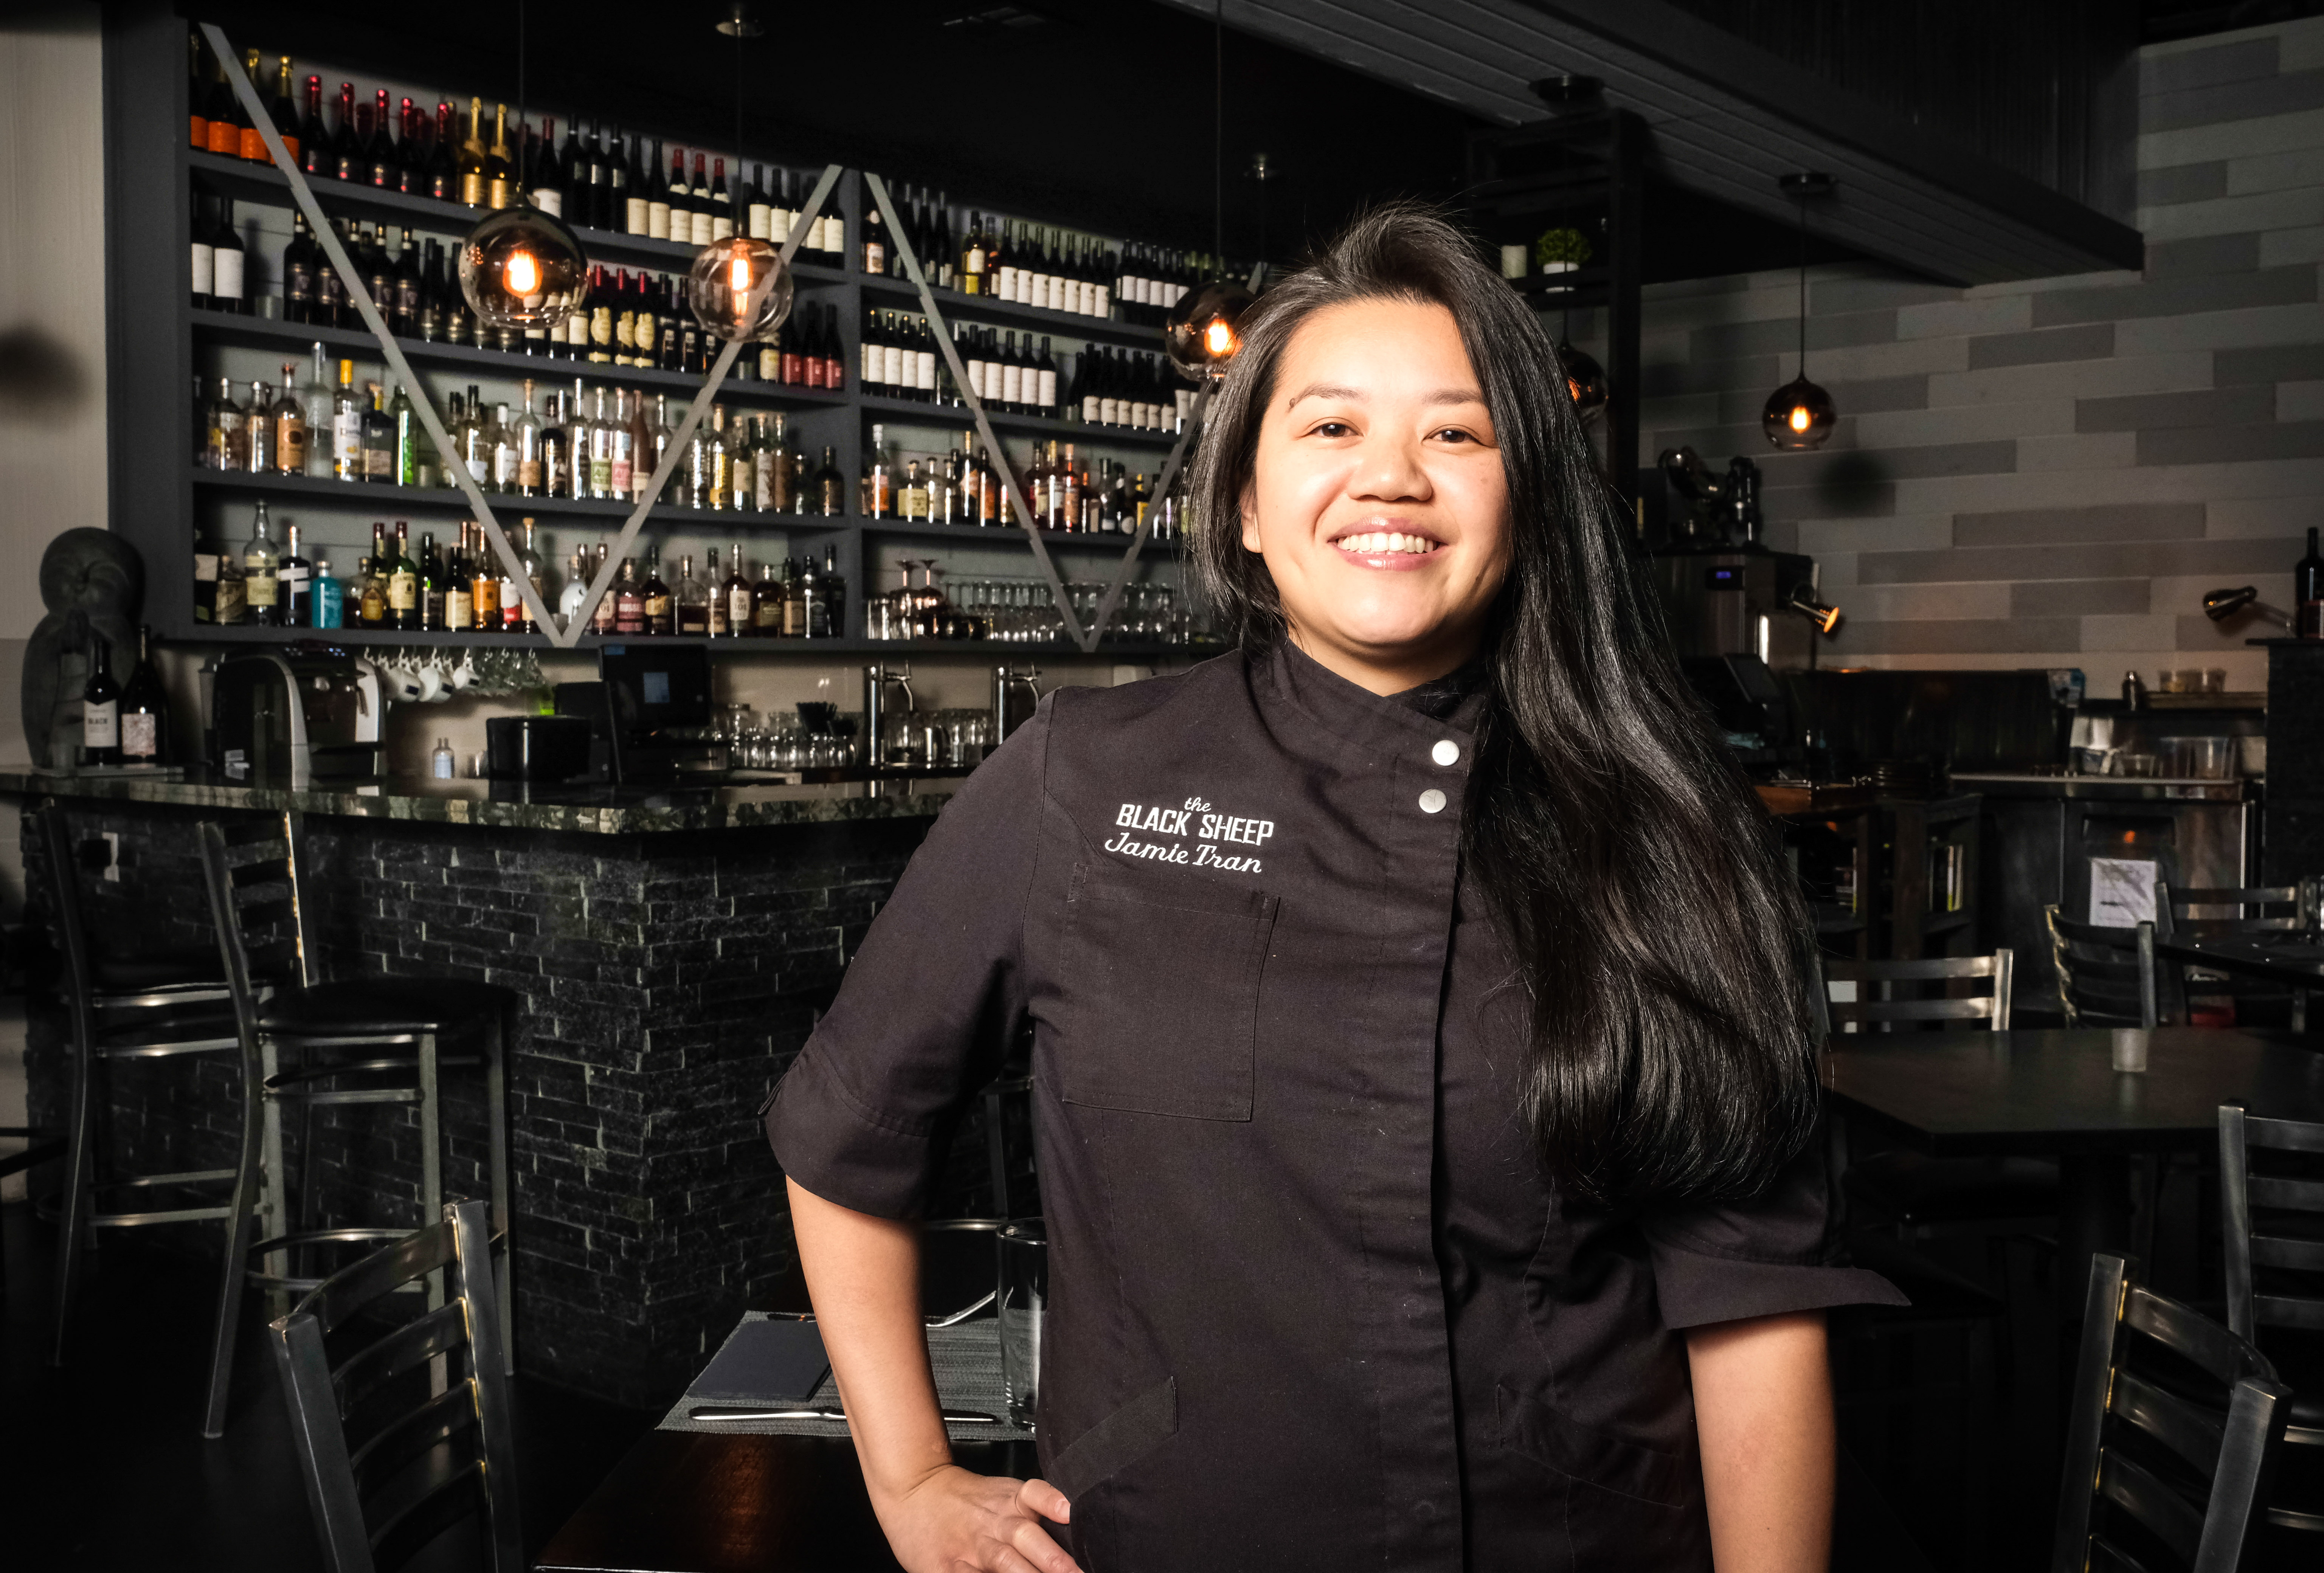 A woman in a jack chef's coat stands in front of a bar